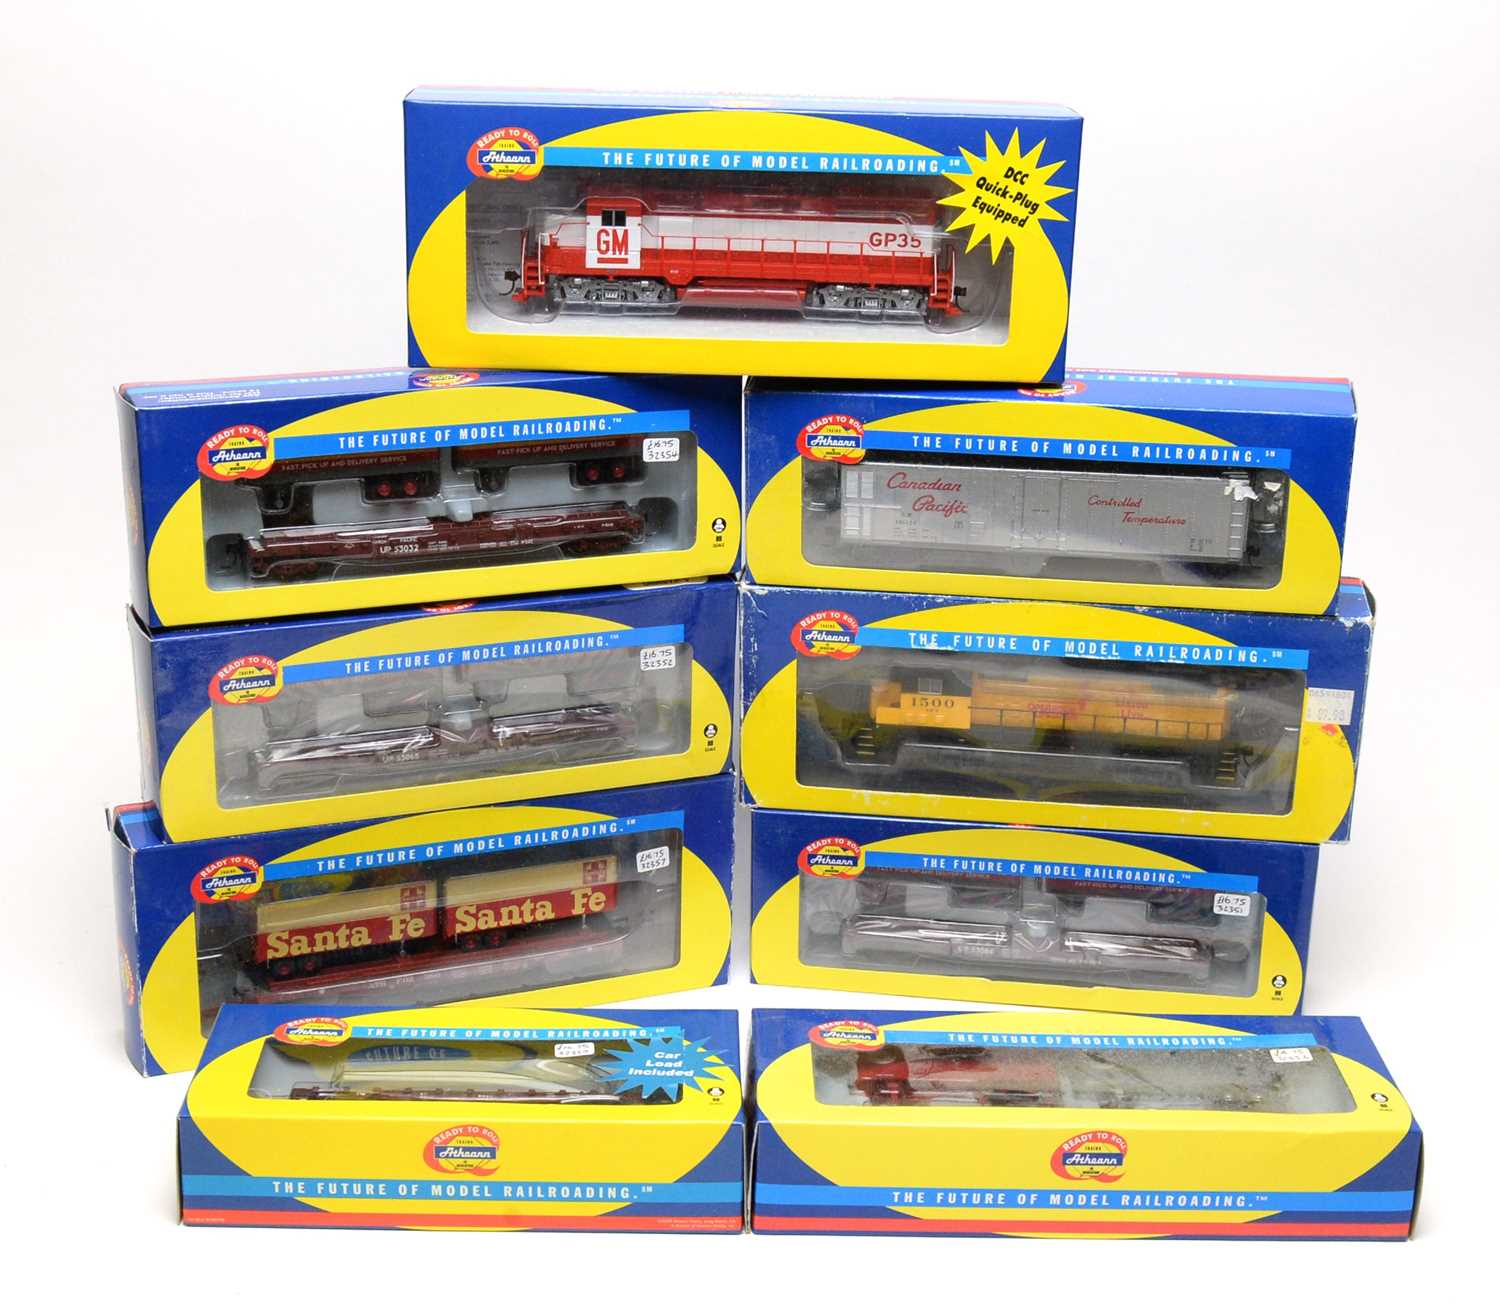 Nine Athearn trains and rolling stock.